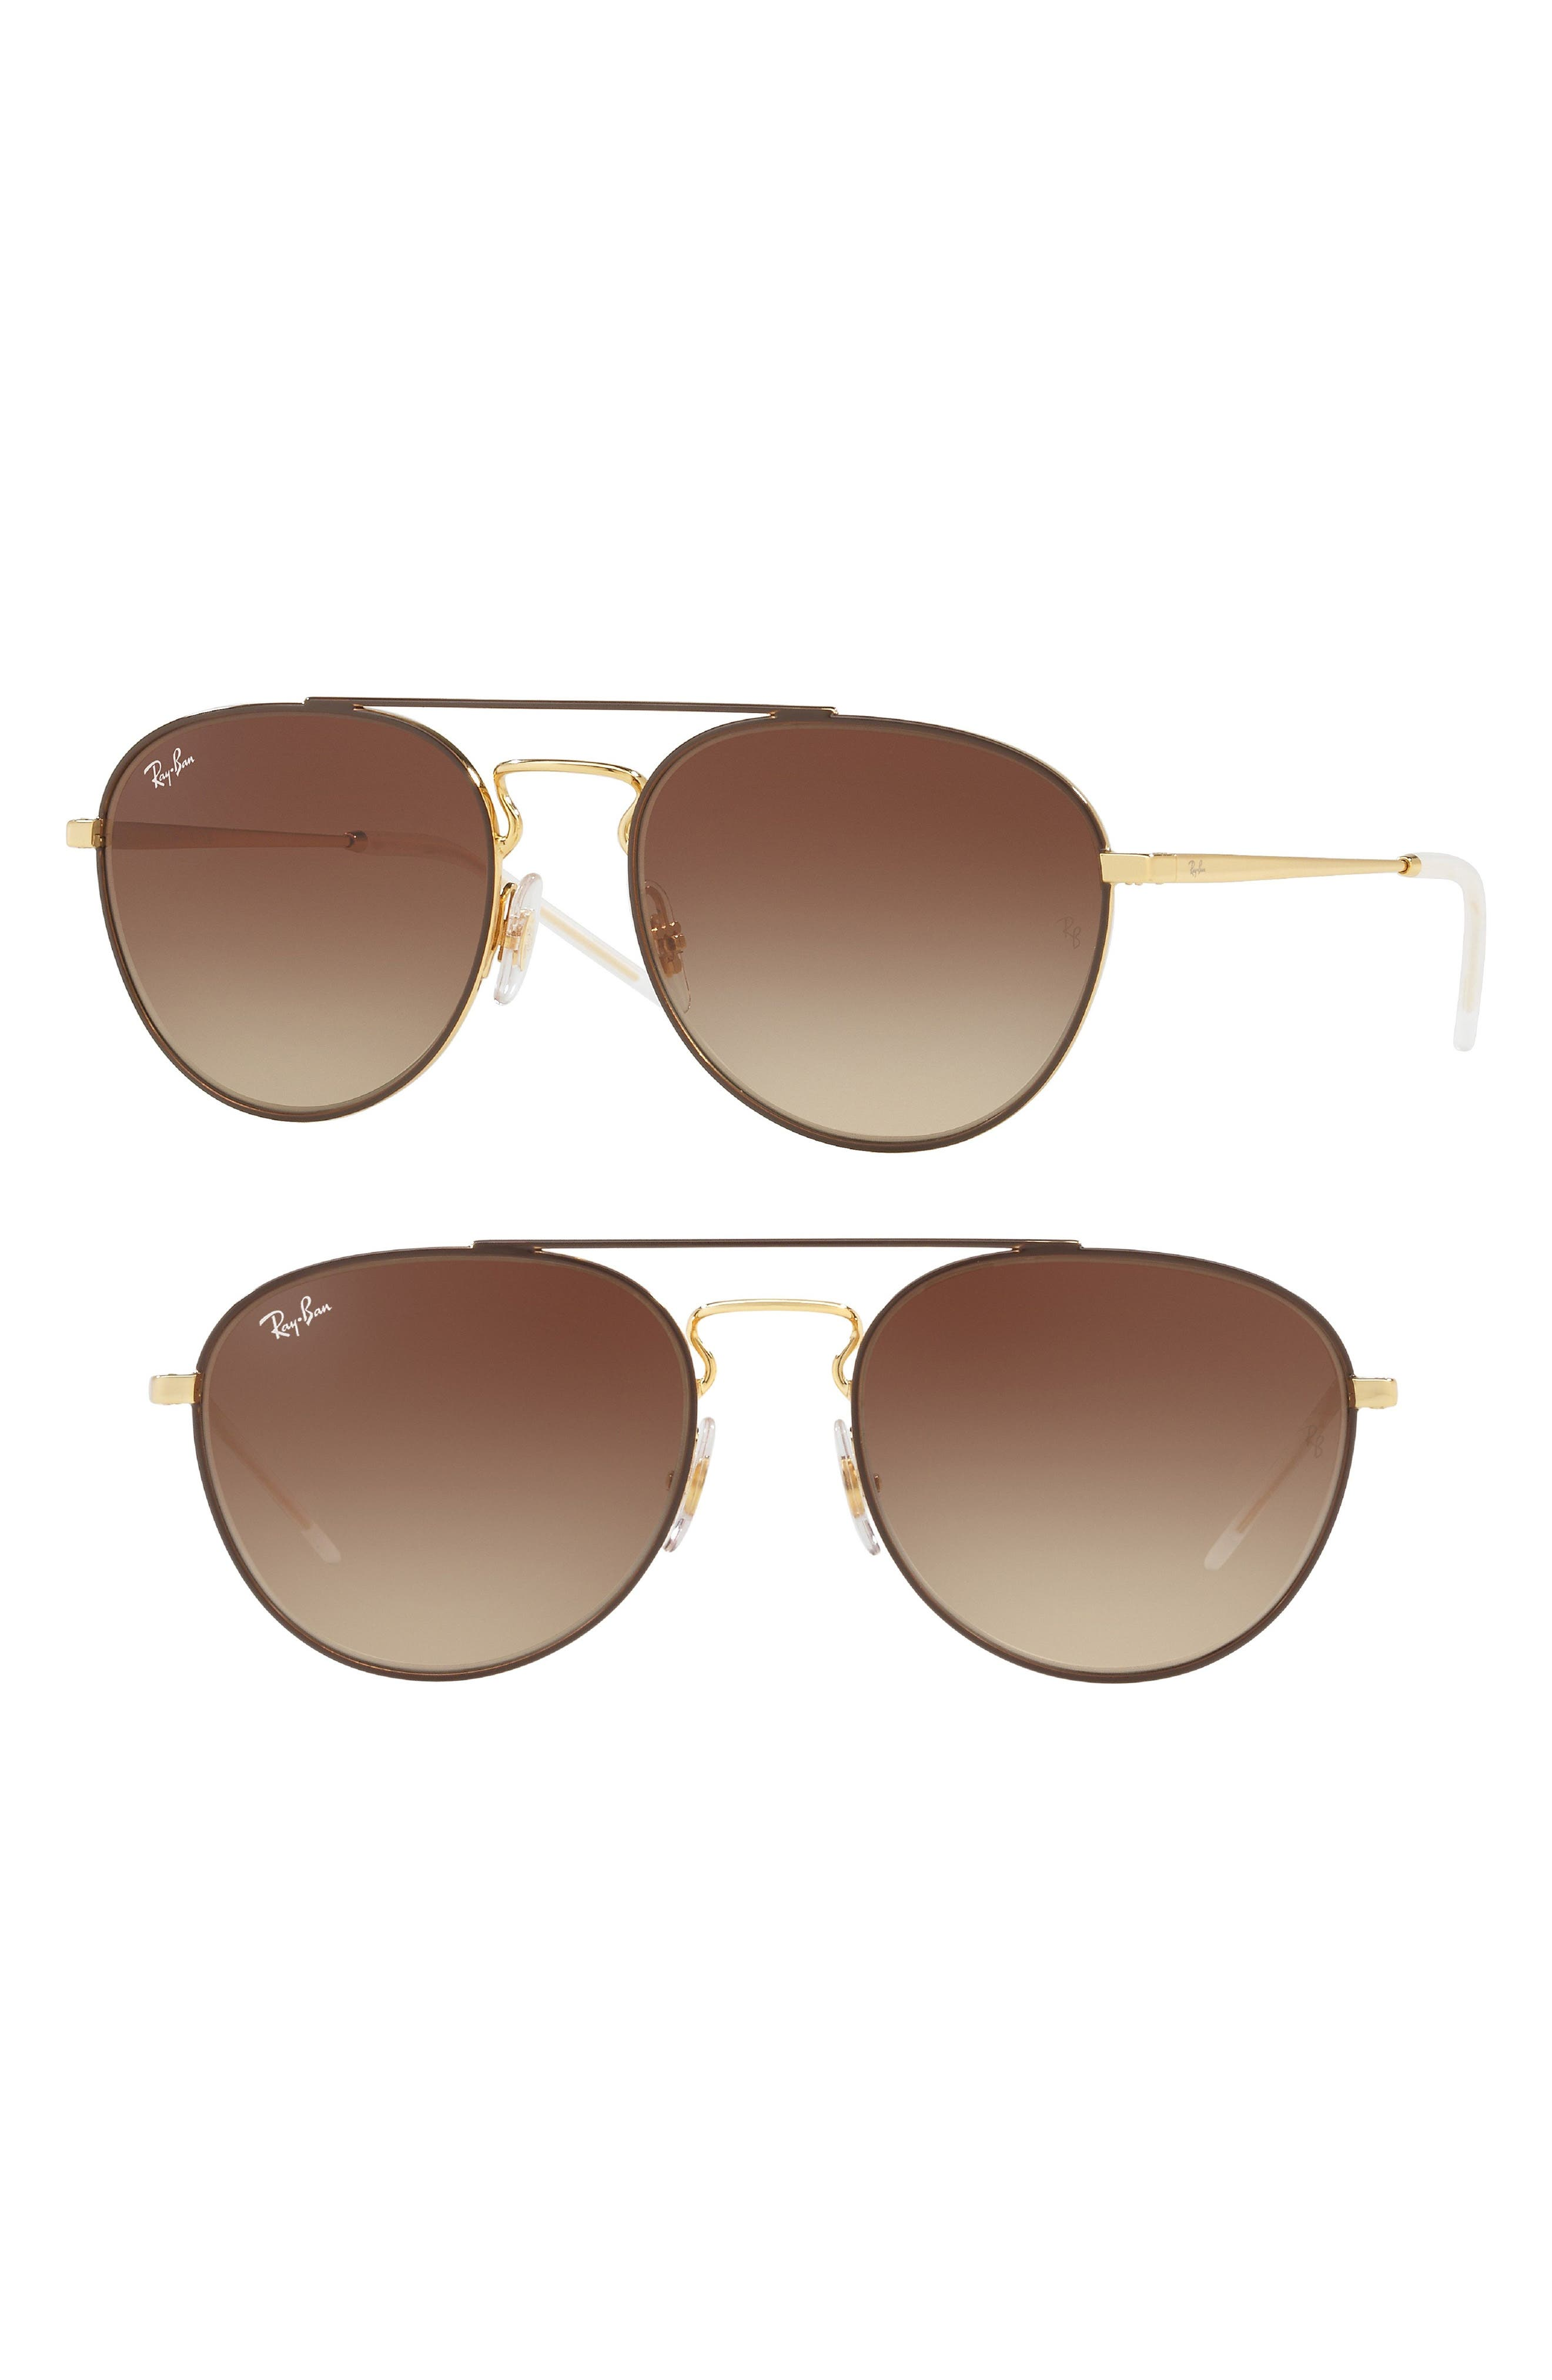 55mm Gradient Lens Round Aviator Sunglasses,                             Main thumbnail 1, color,                             Gold Brown